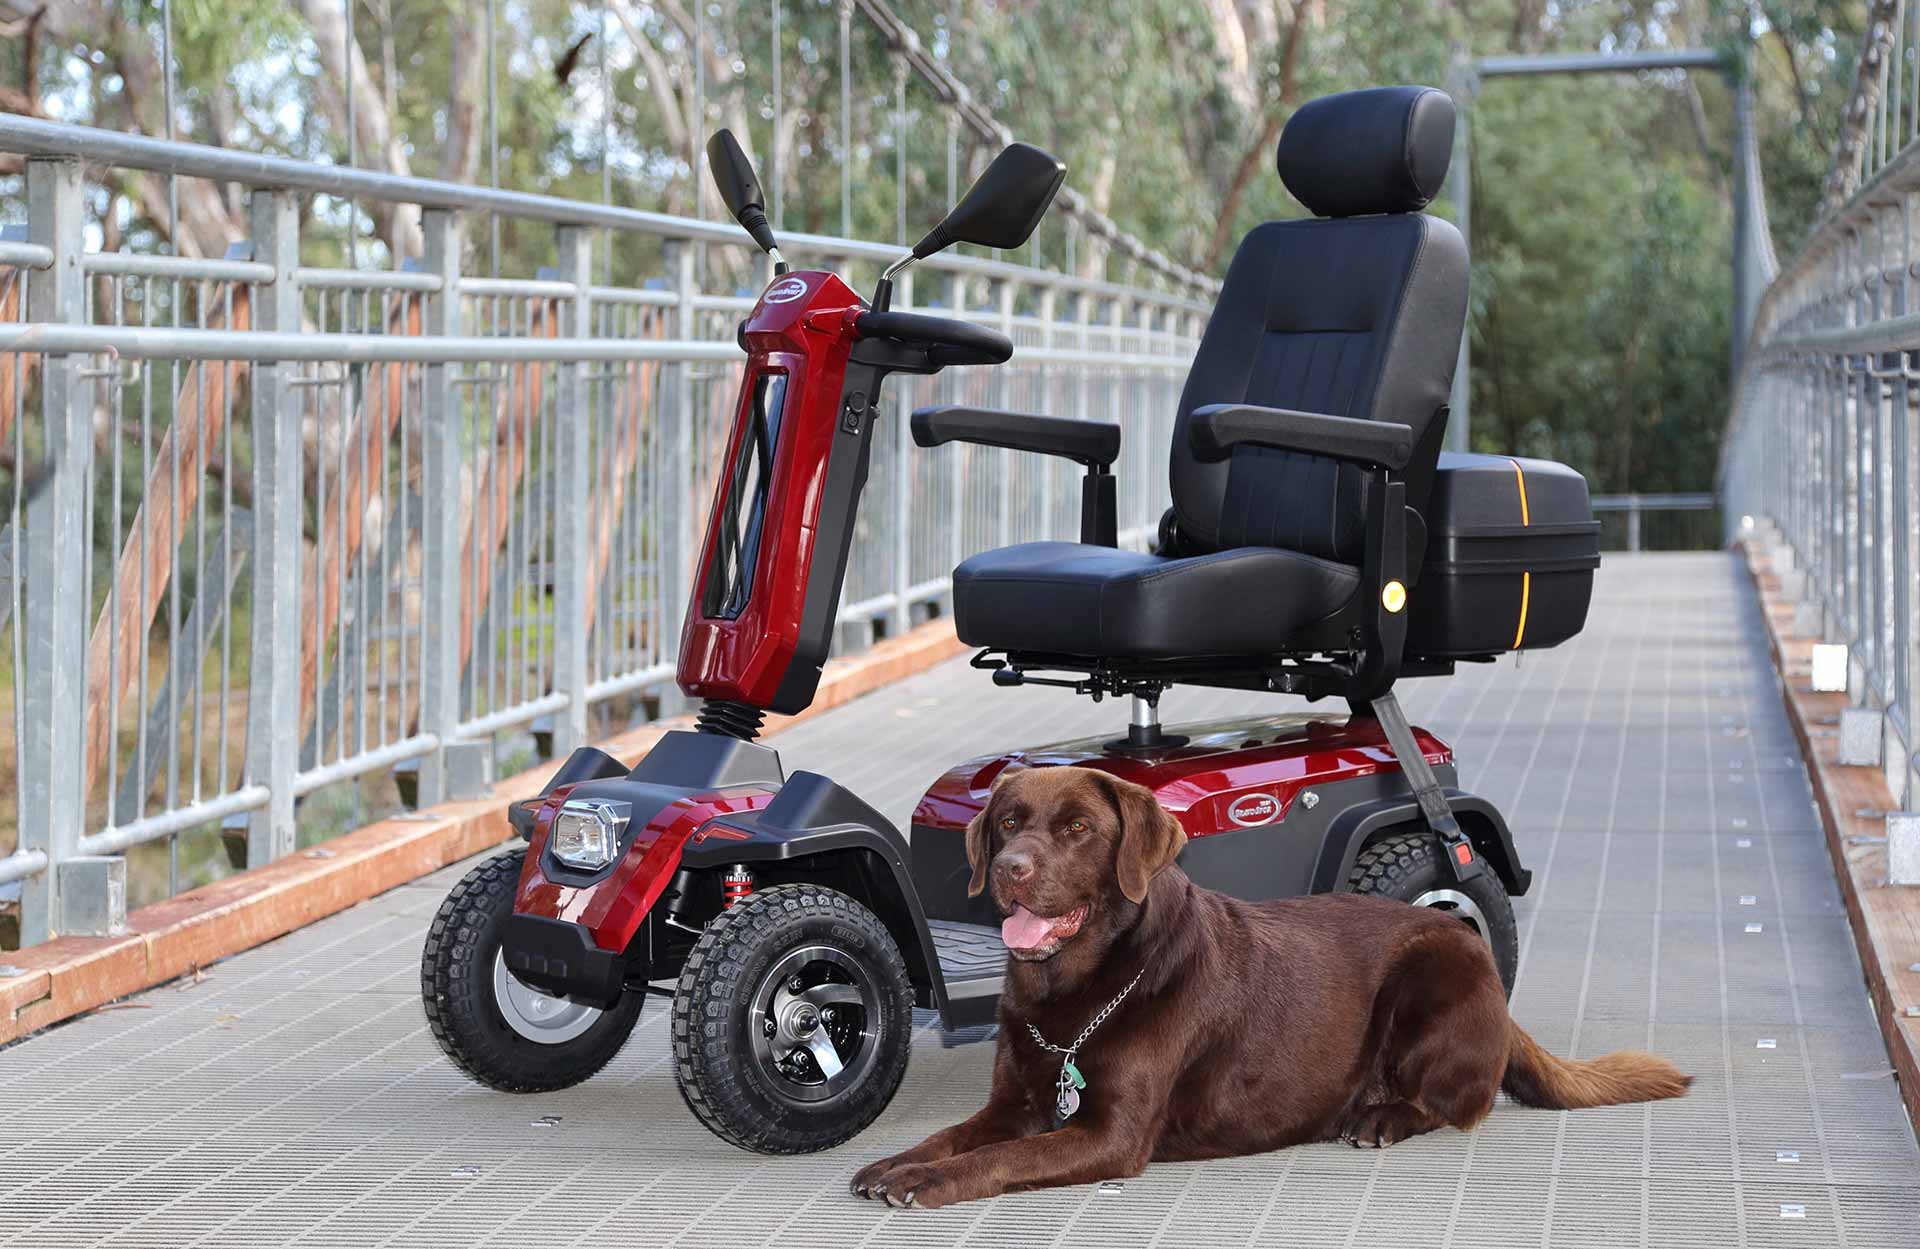 Friendly Dog and Scooter